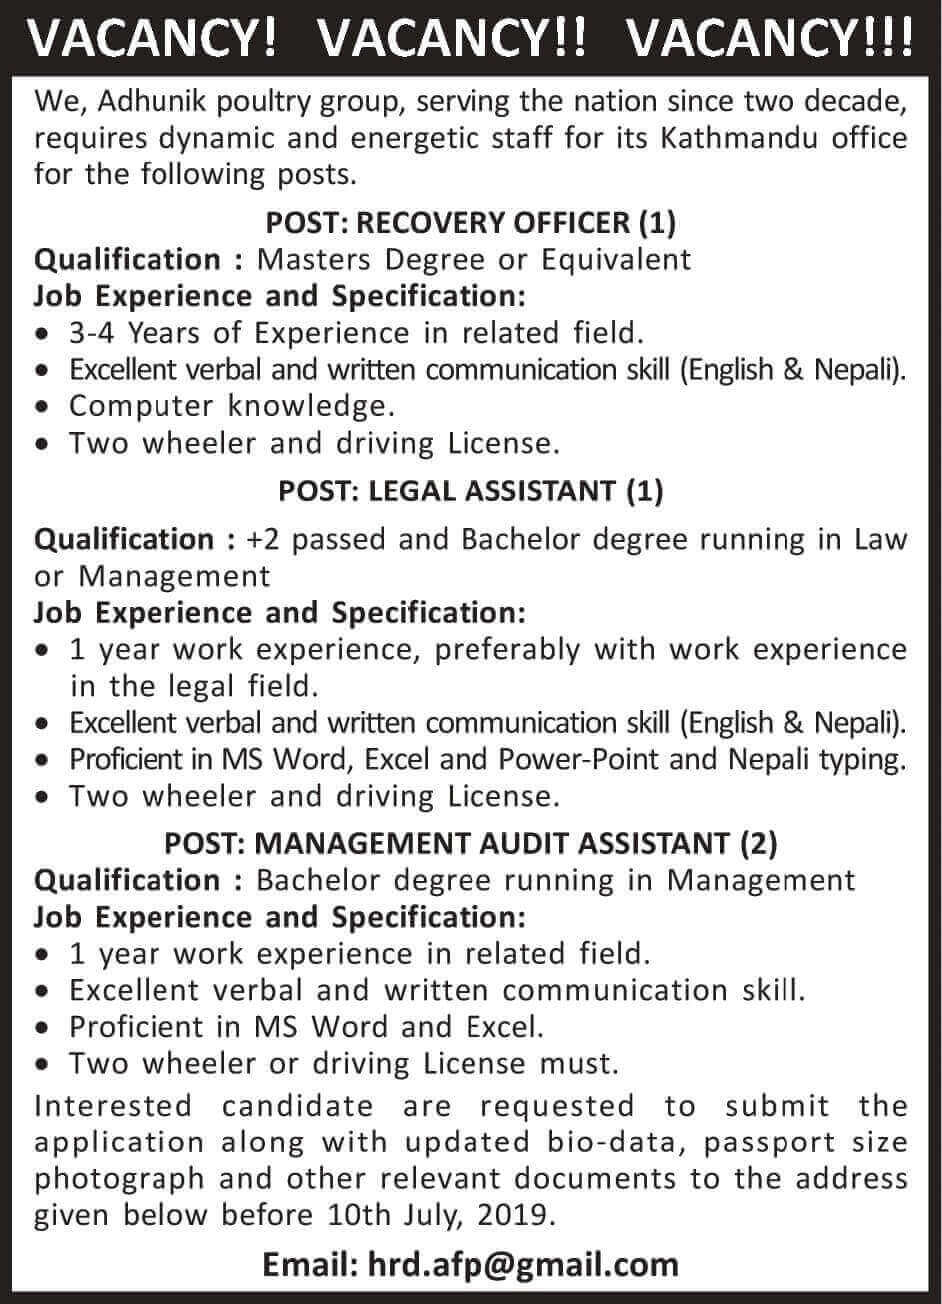 Job Vacancy at Adhunik Poultry Group